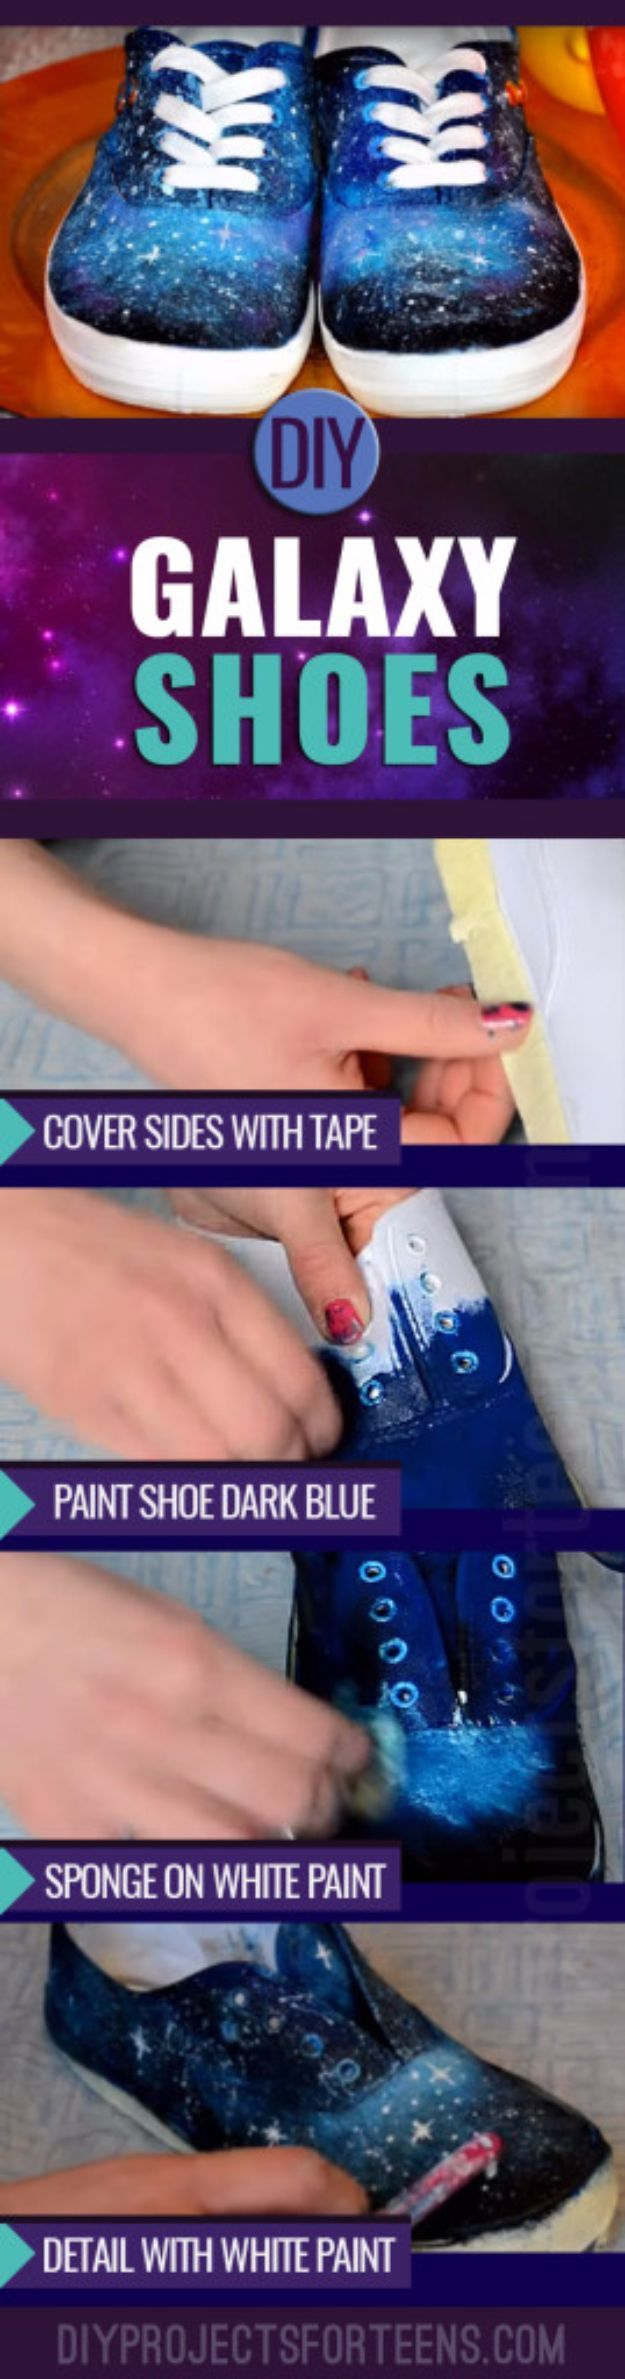 DIY Projects for Teenagers - DIY Galaxy Shoes - Cool Teen Crafts Ideas for Bedroom Decor, Gifts, Clothes and Fun Room Organization. Summer and Awesome School Stuff http://diyjoy.com/cool-diy-projects-for-teenagers